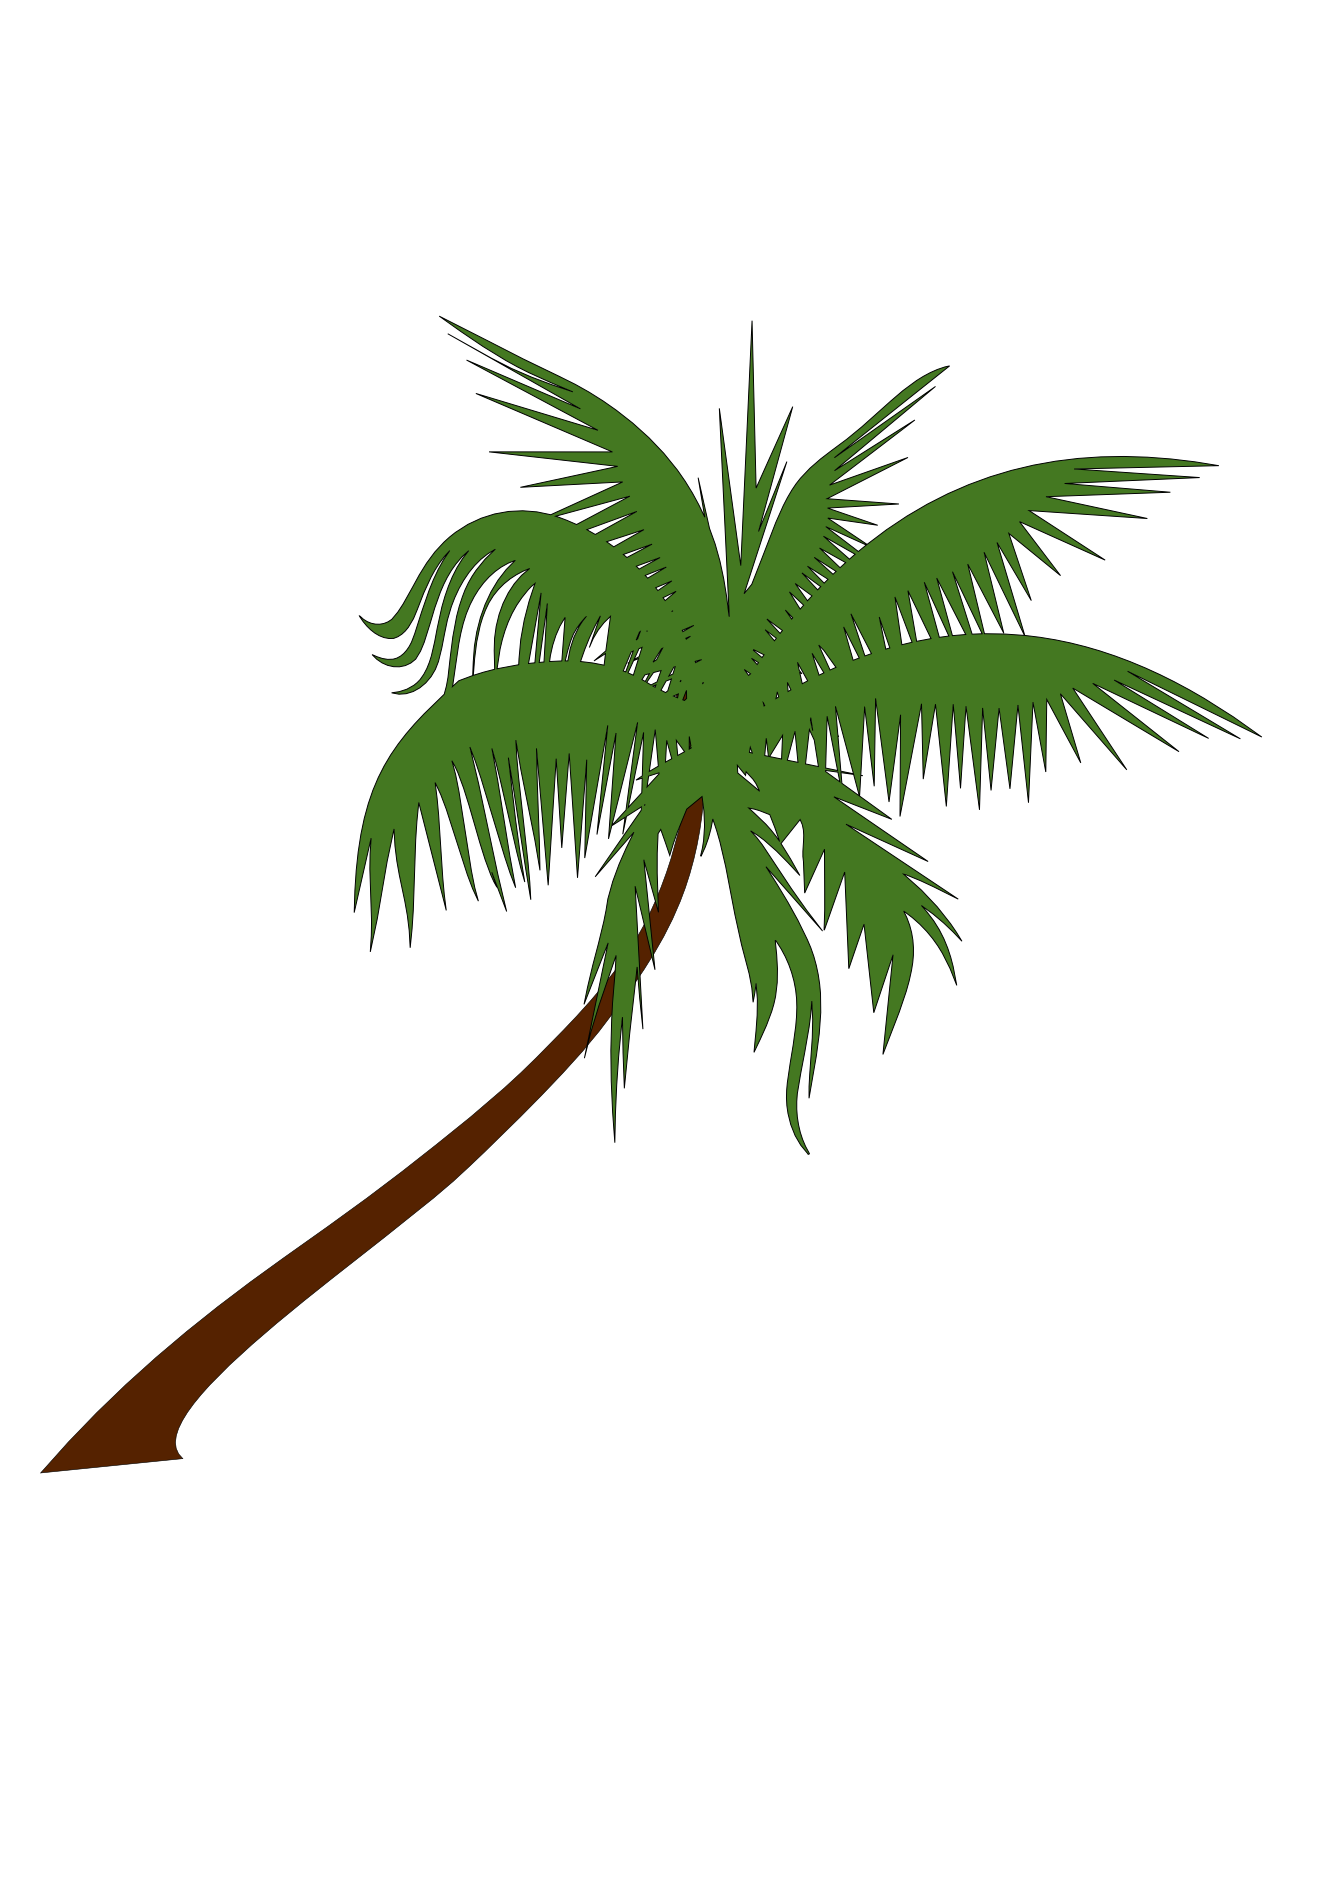 Palm tree christmas clipart jpg free download Palm Tree Clip Art Png | Clipart Panda - Free Clipart Images jpg free download